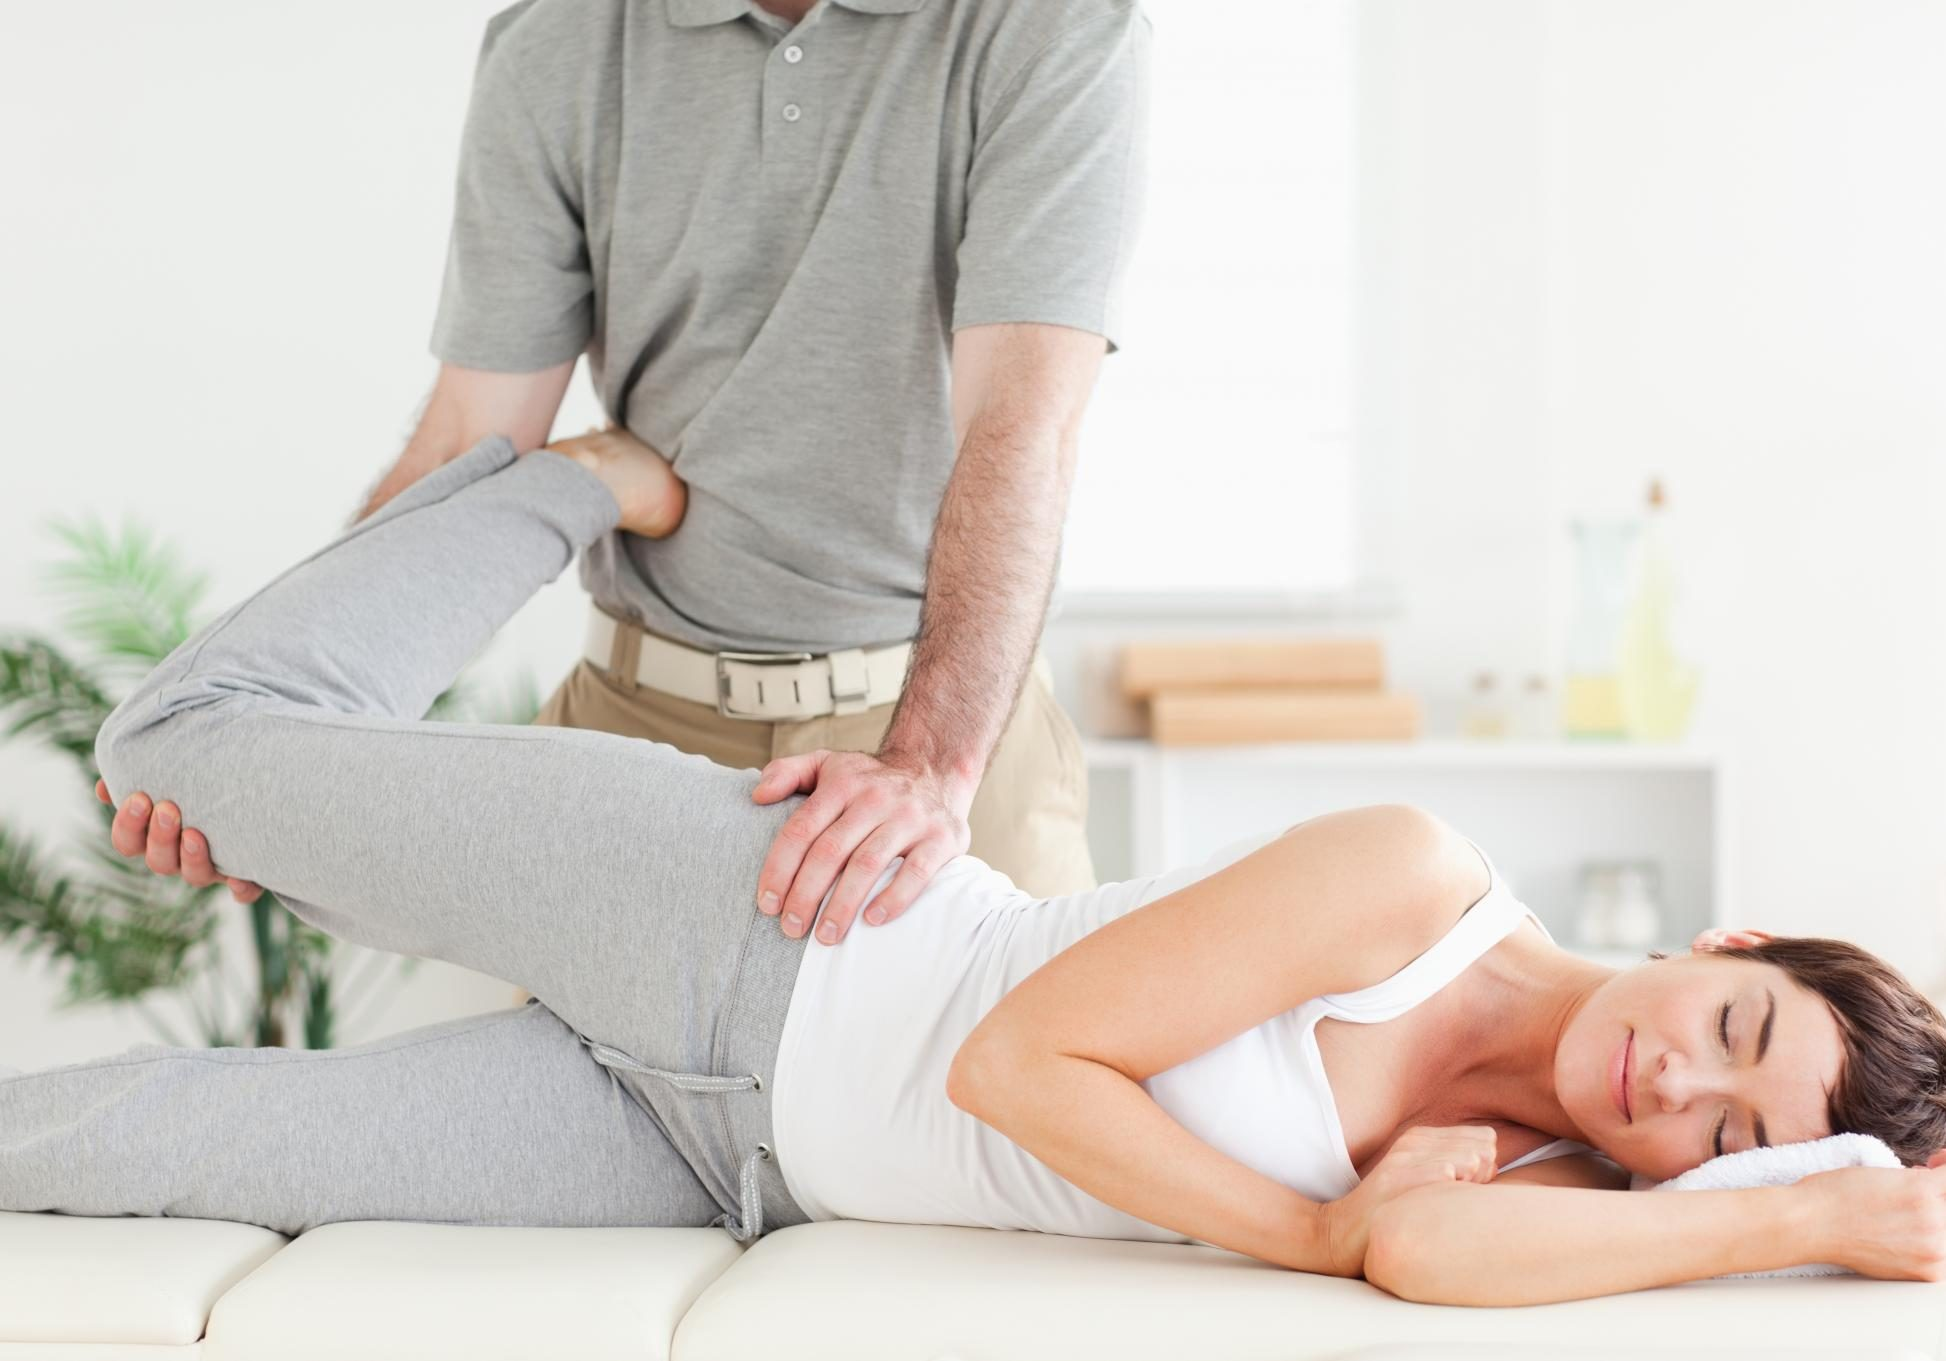 Spinal Adjustments and Chiropractic Services - Osteopathy 2